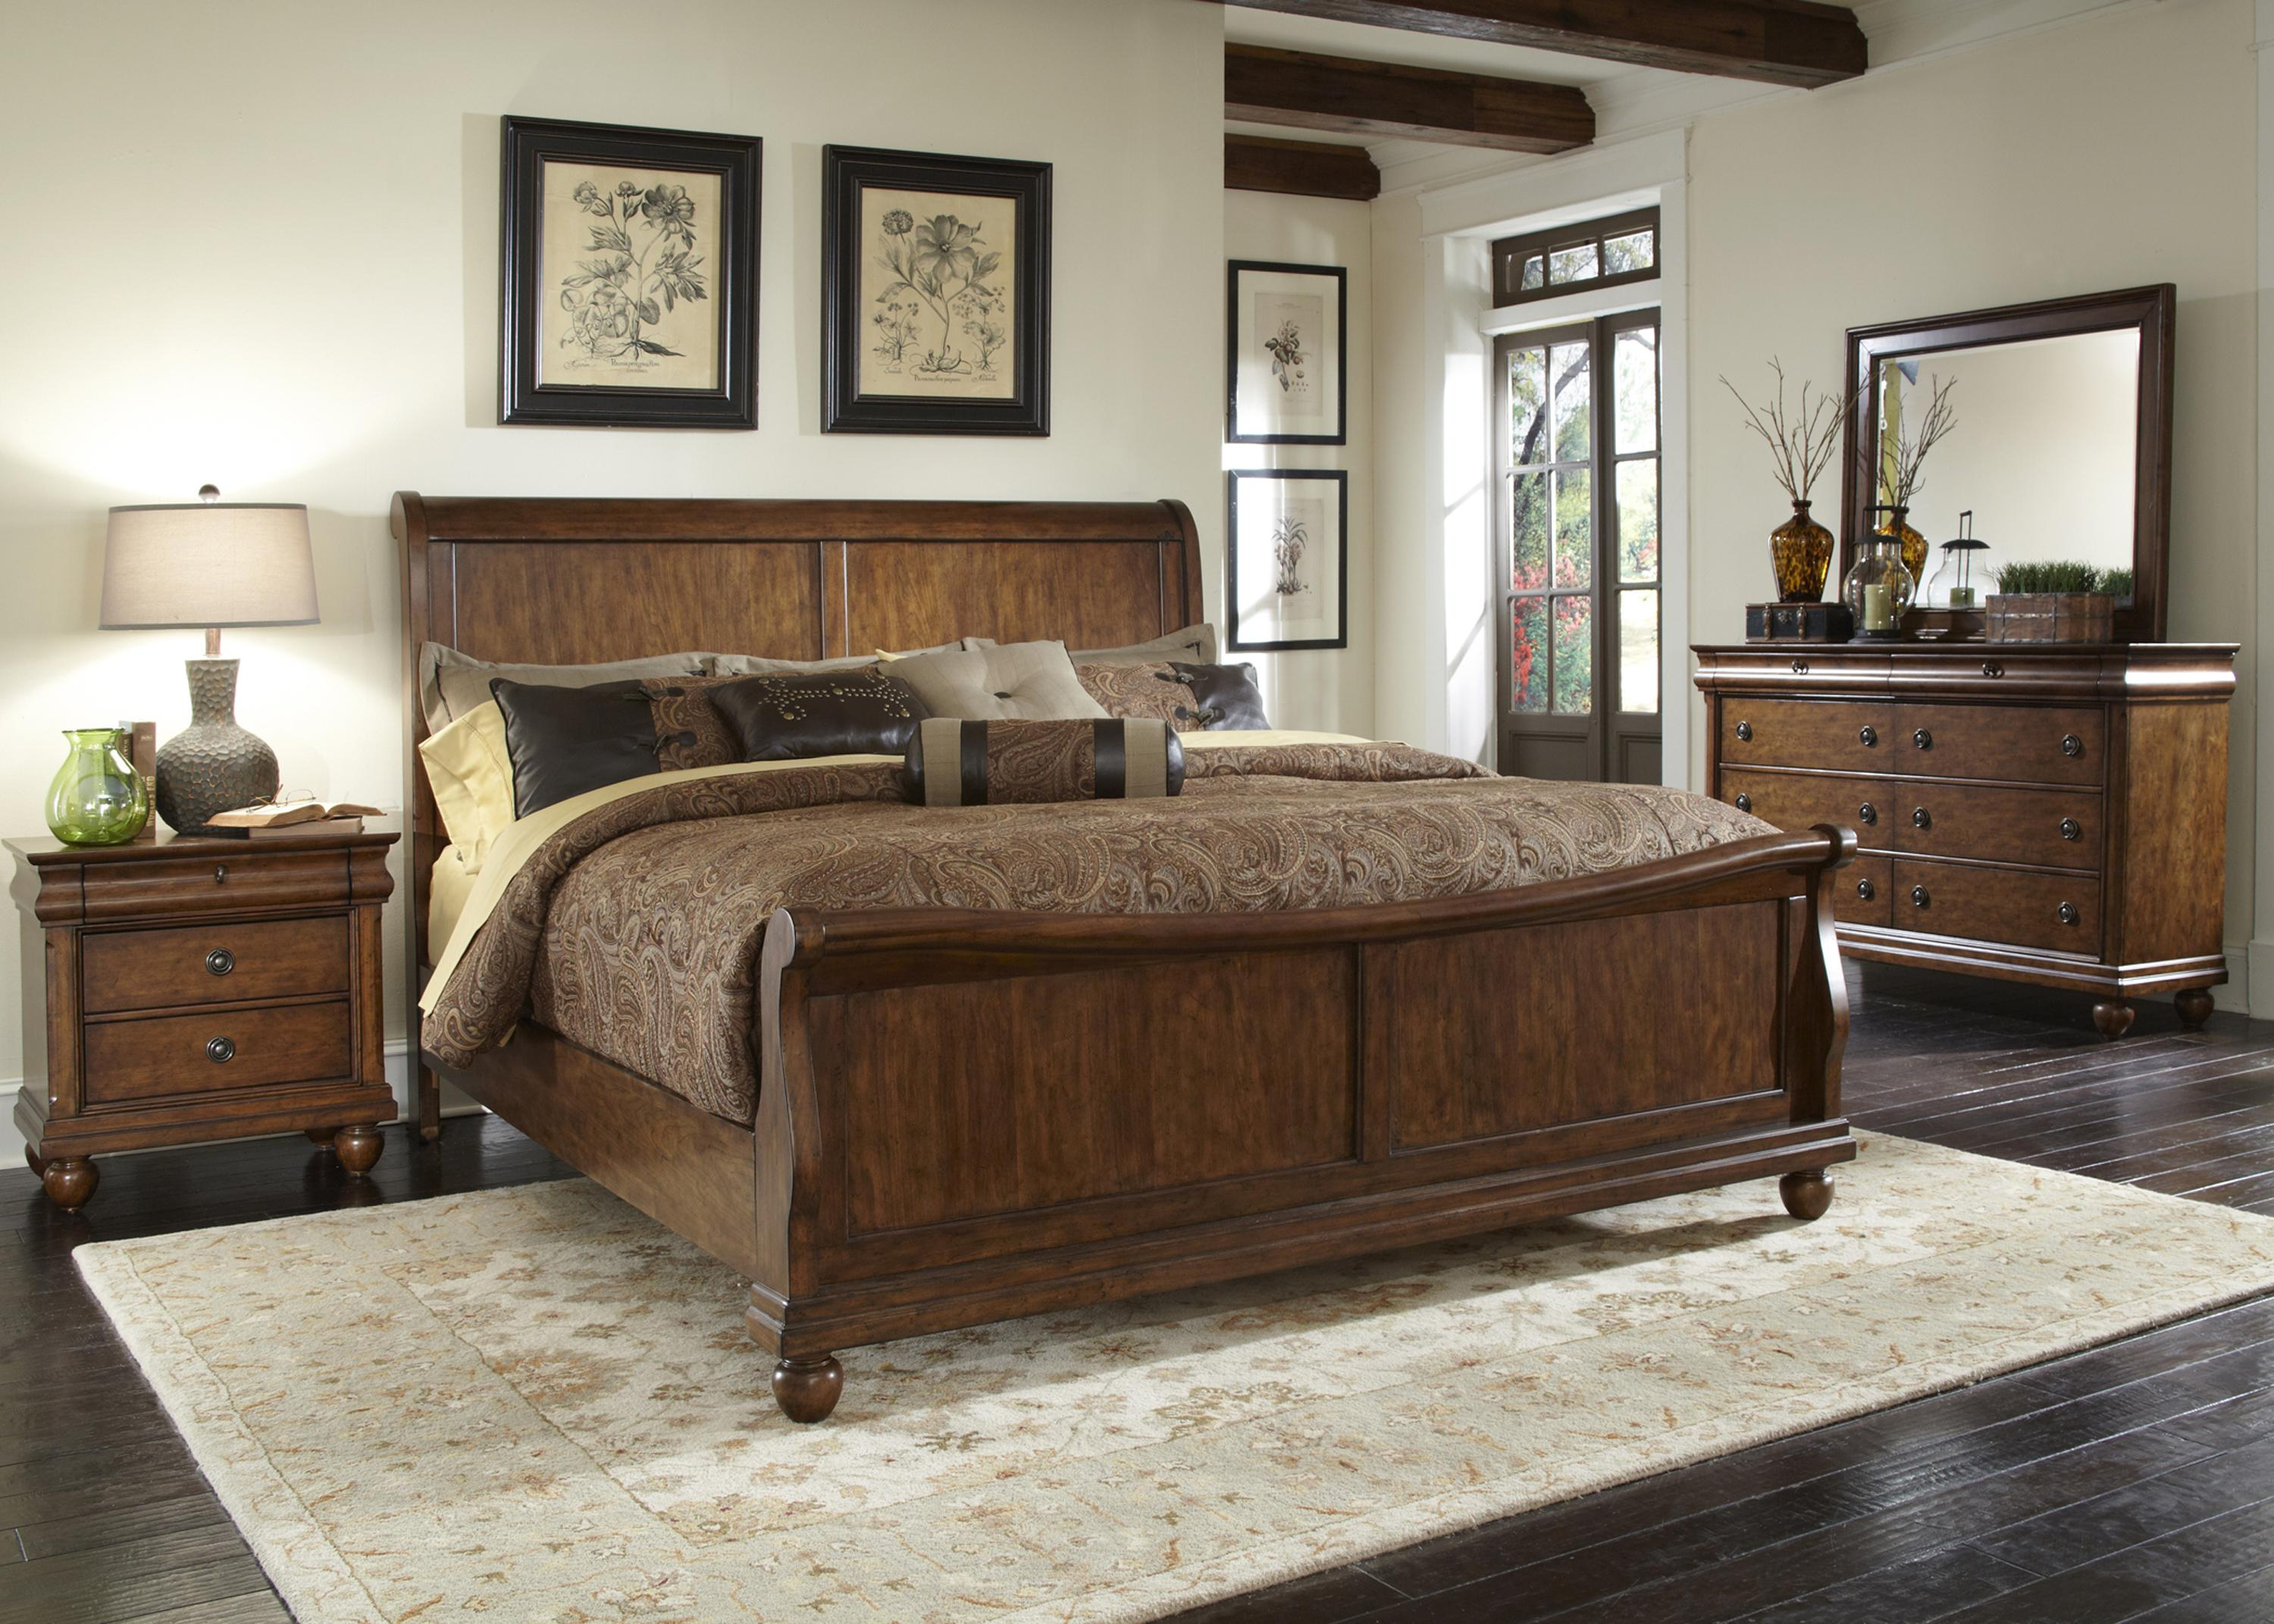 Rustic Traditions Queen Bedroom Group 2 by Sarah Randolph Designs at Virginia Furniture Market